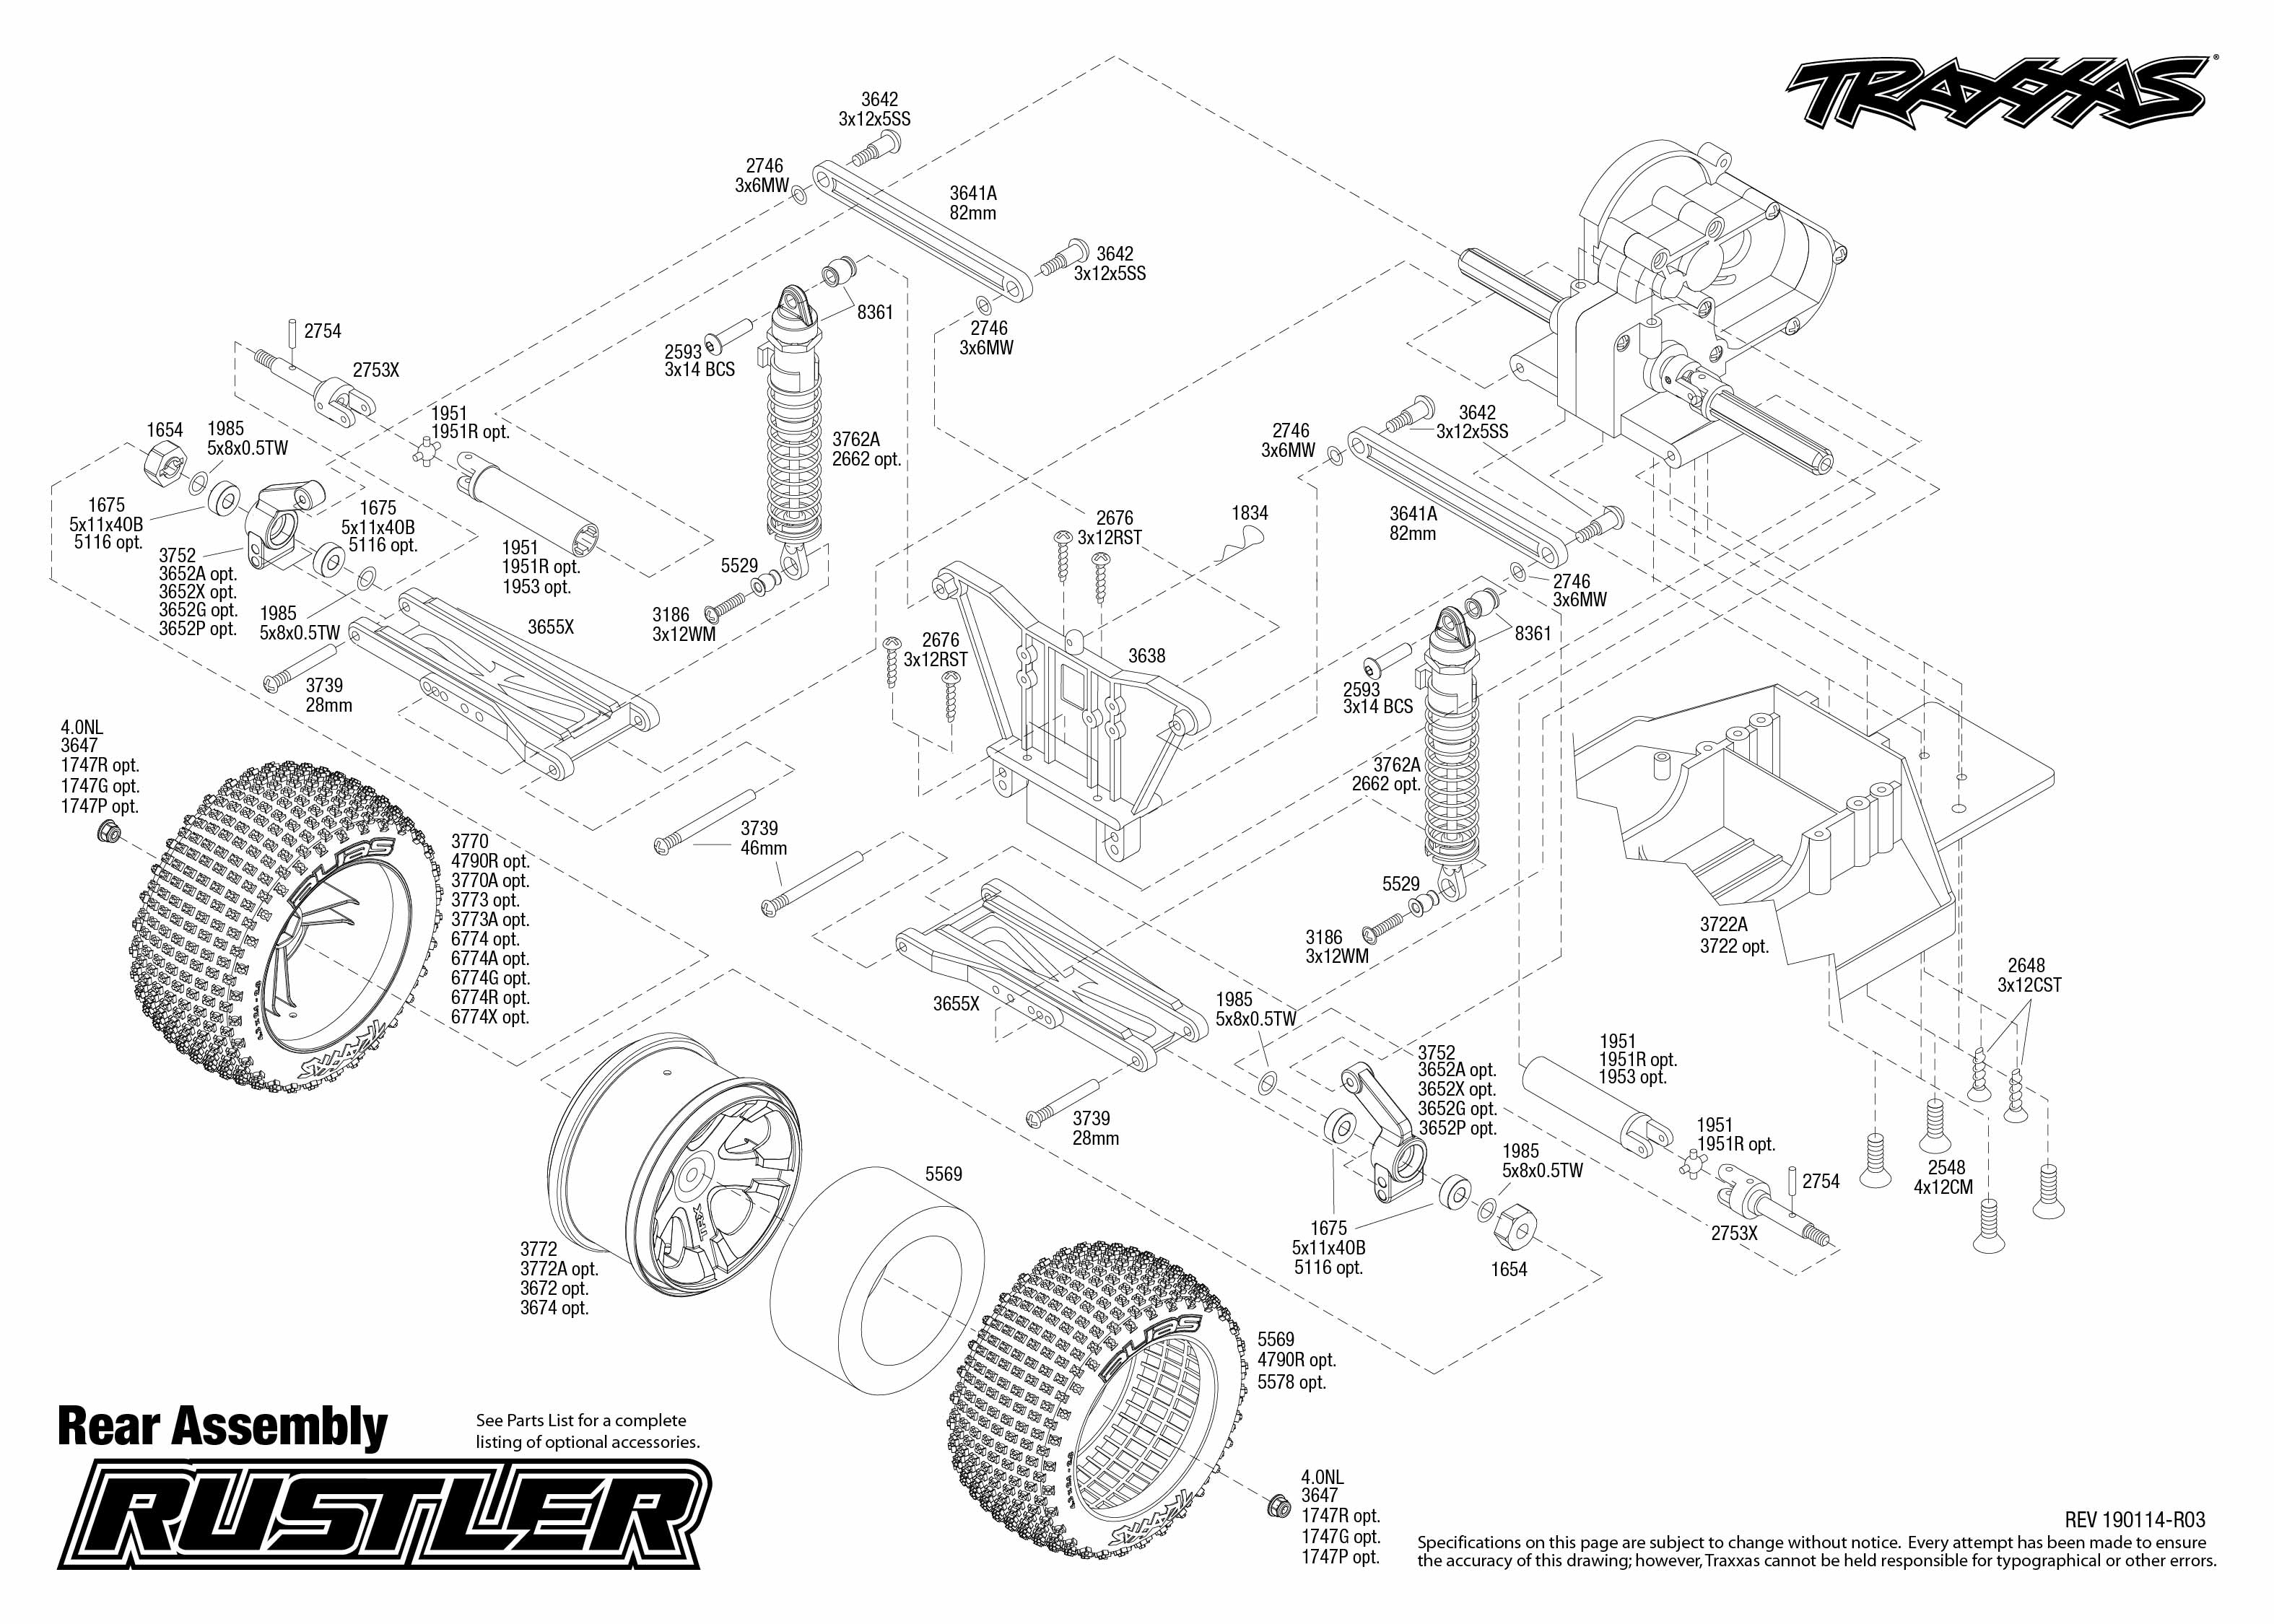 Rustler 4 Rear Assembly Exploded View